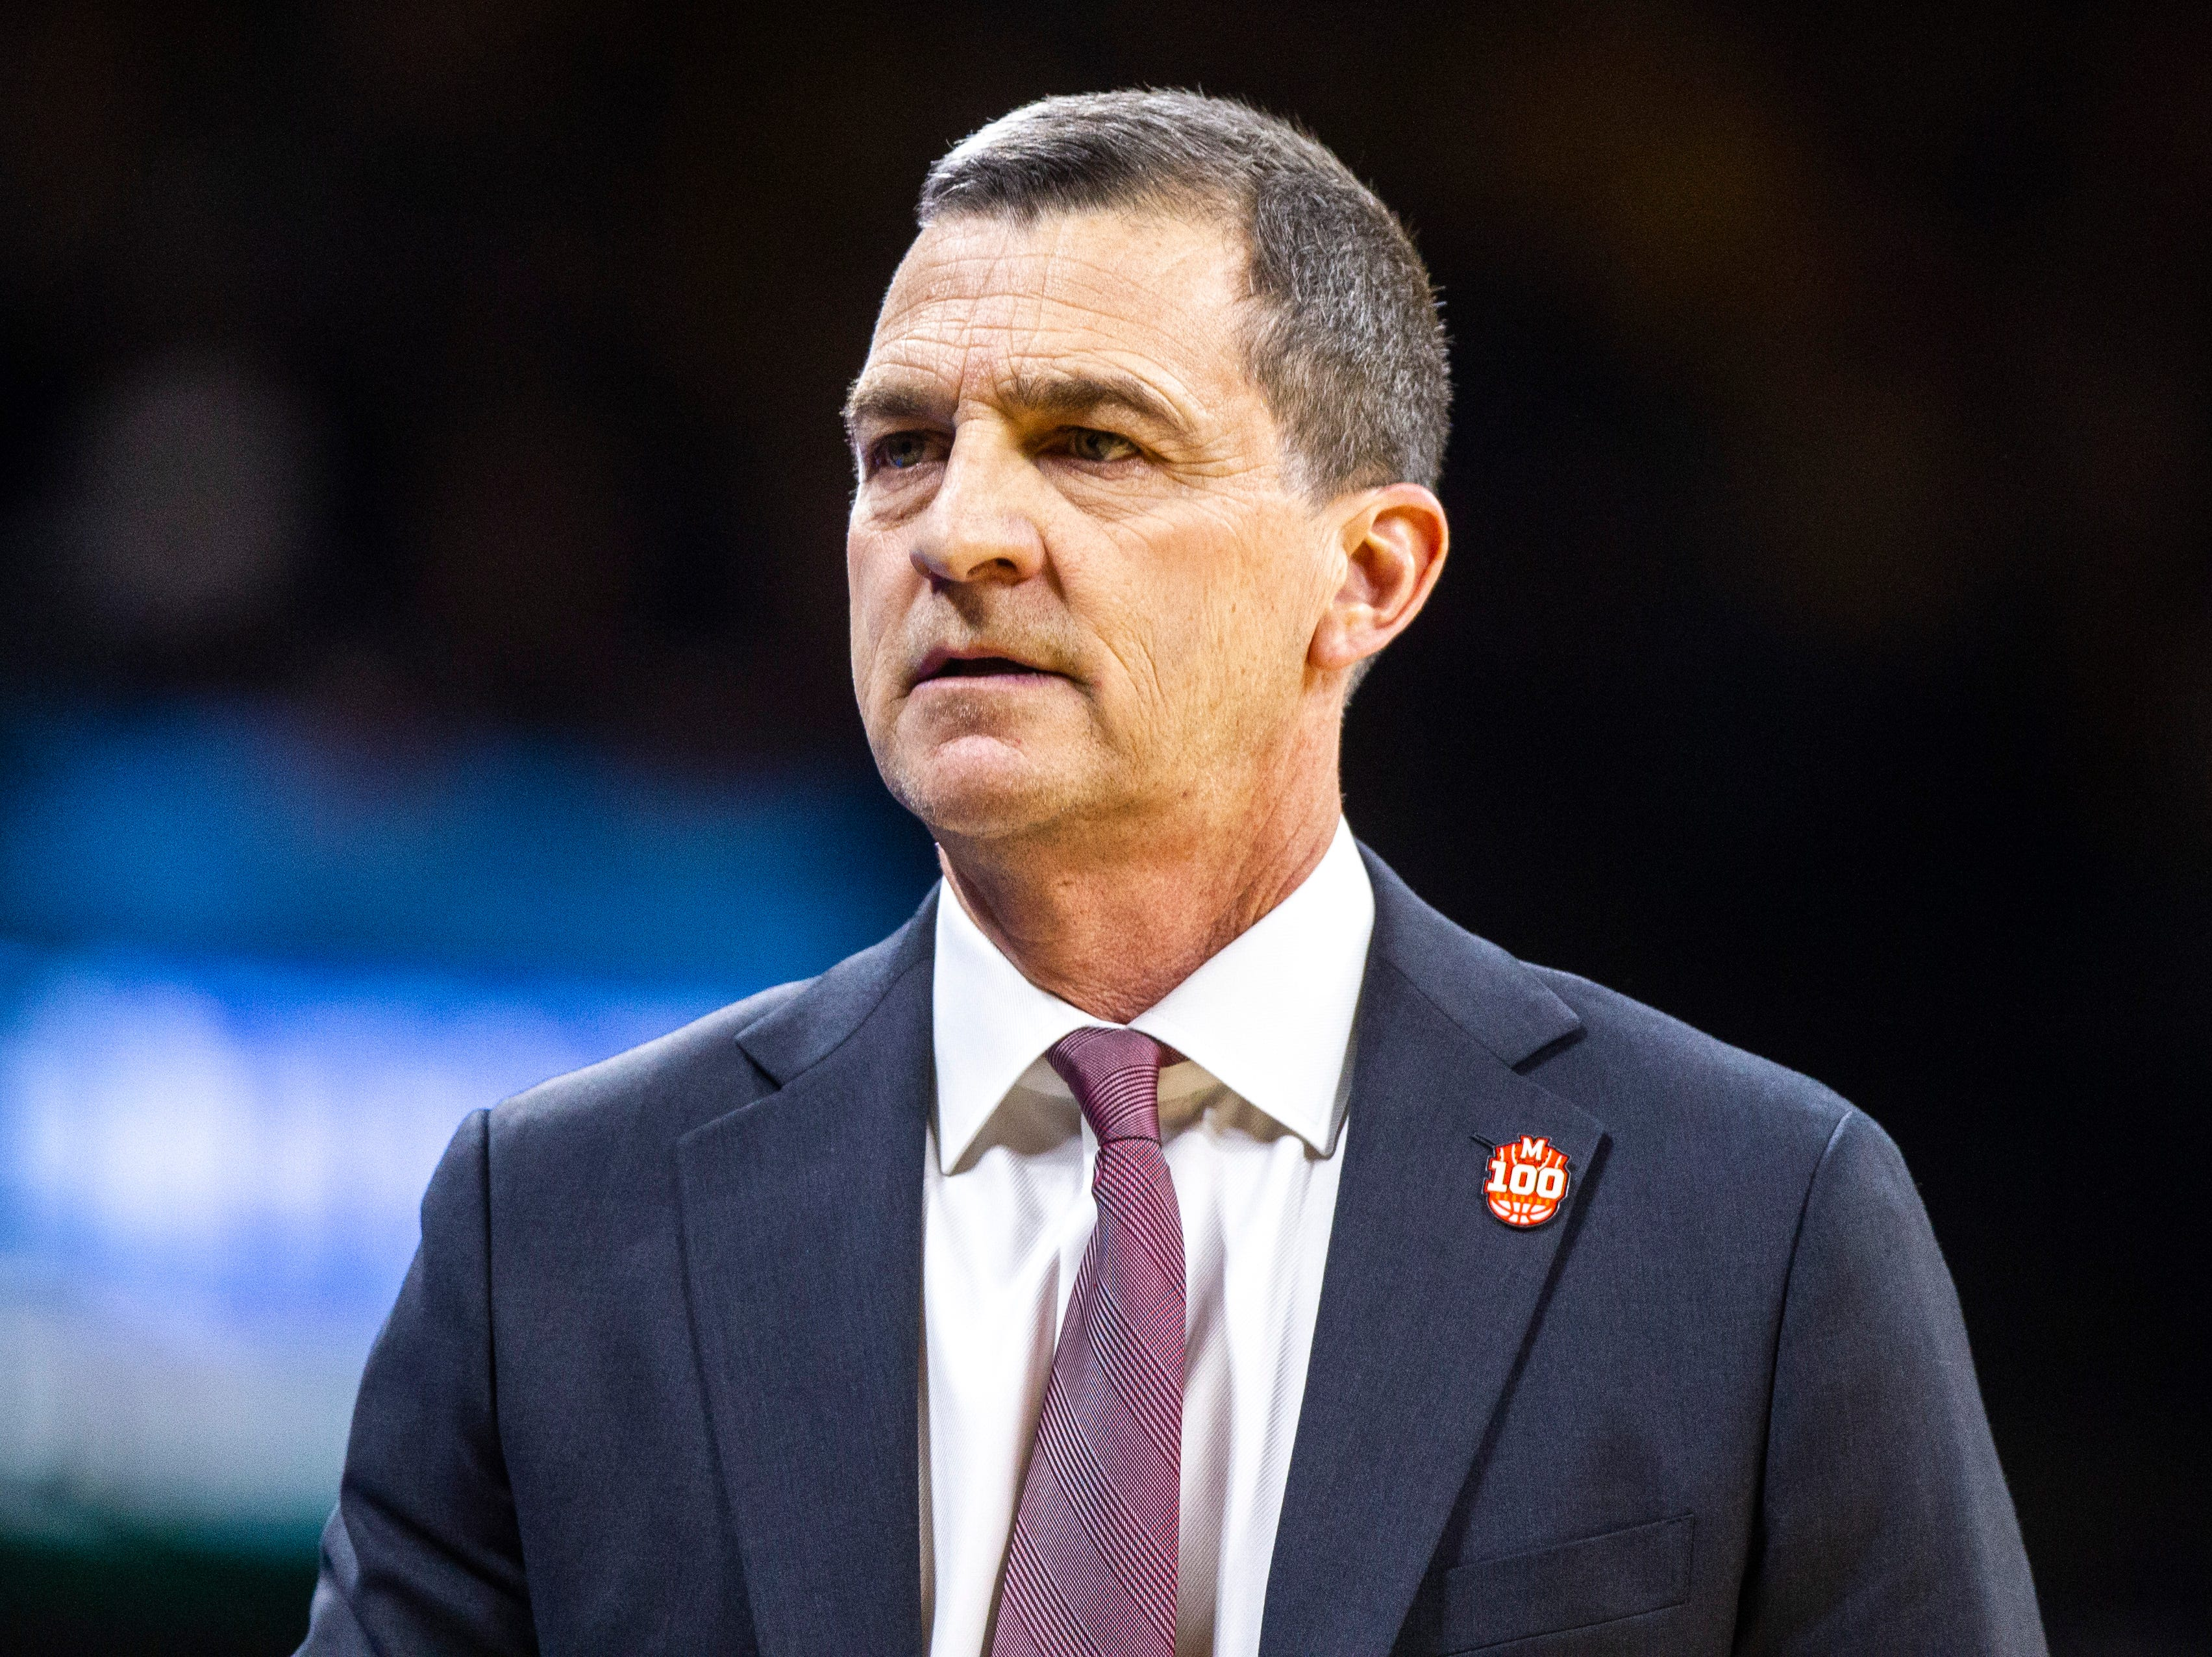 Maryland head coach Mark Turgeon walks the baseline during a NCAA Big Ten Conference men's basketball game on Tuesday, Feb. 19, 2019 at Carver-Hawkeye Arena in Iowa City, Iowa.